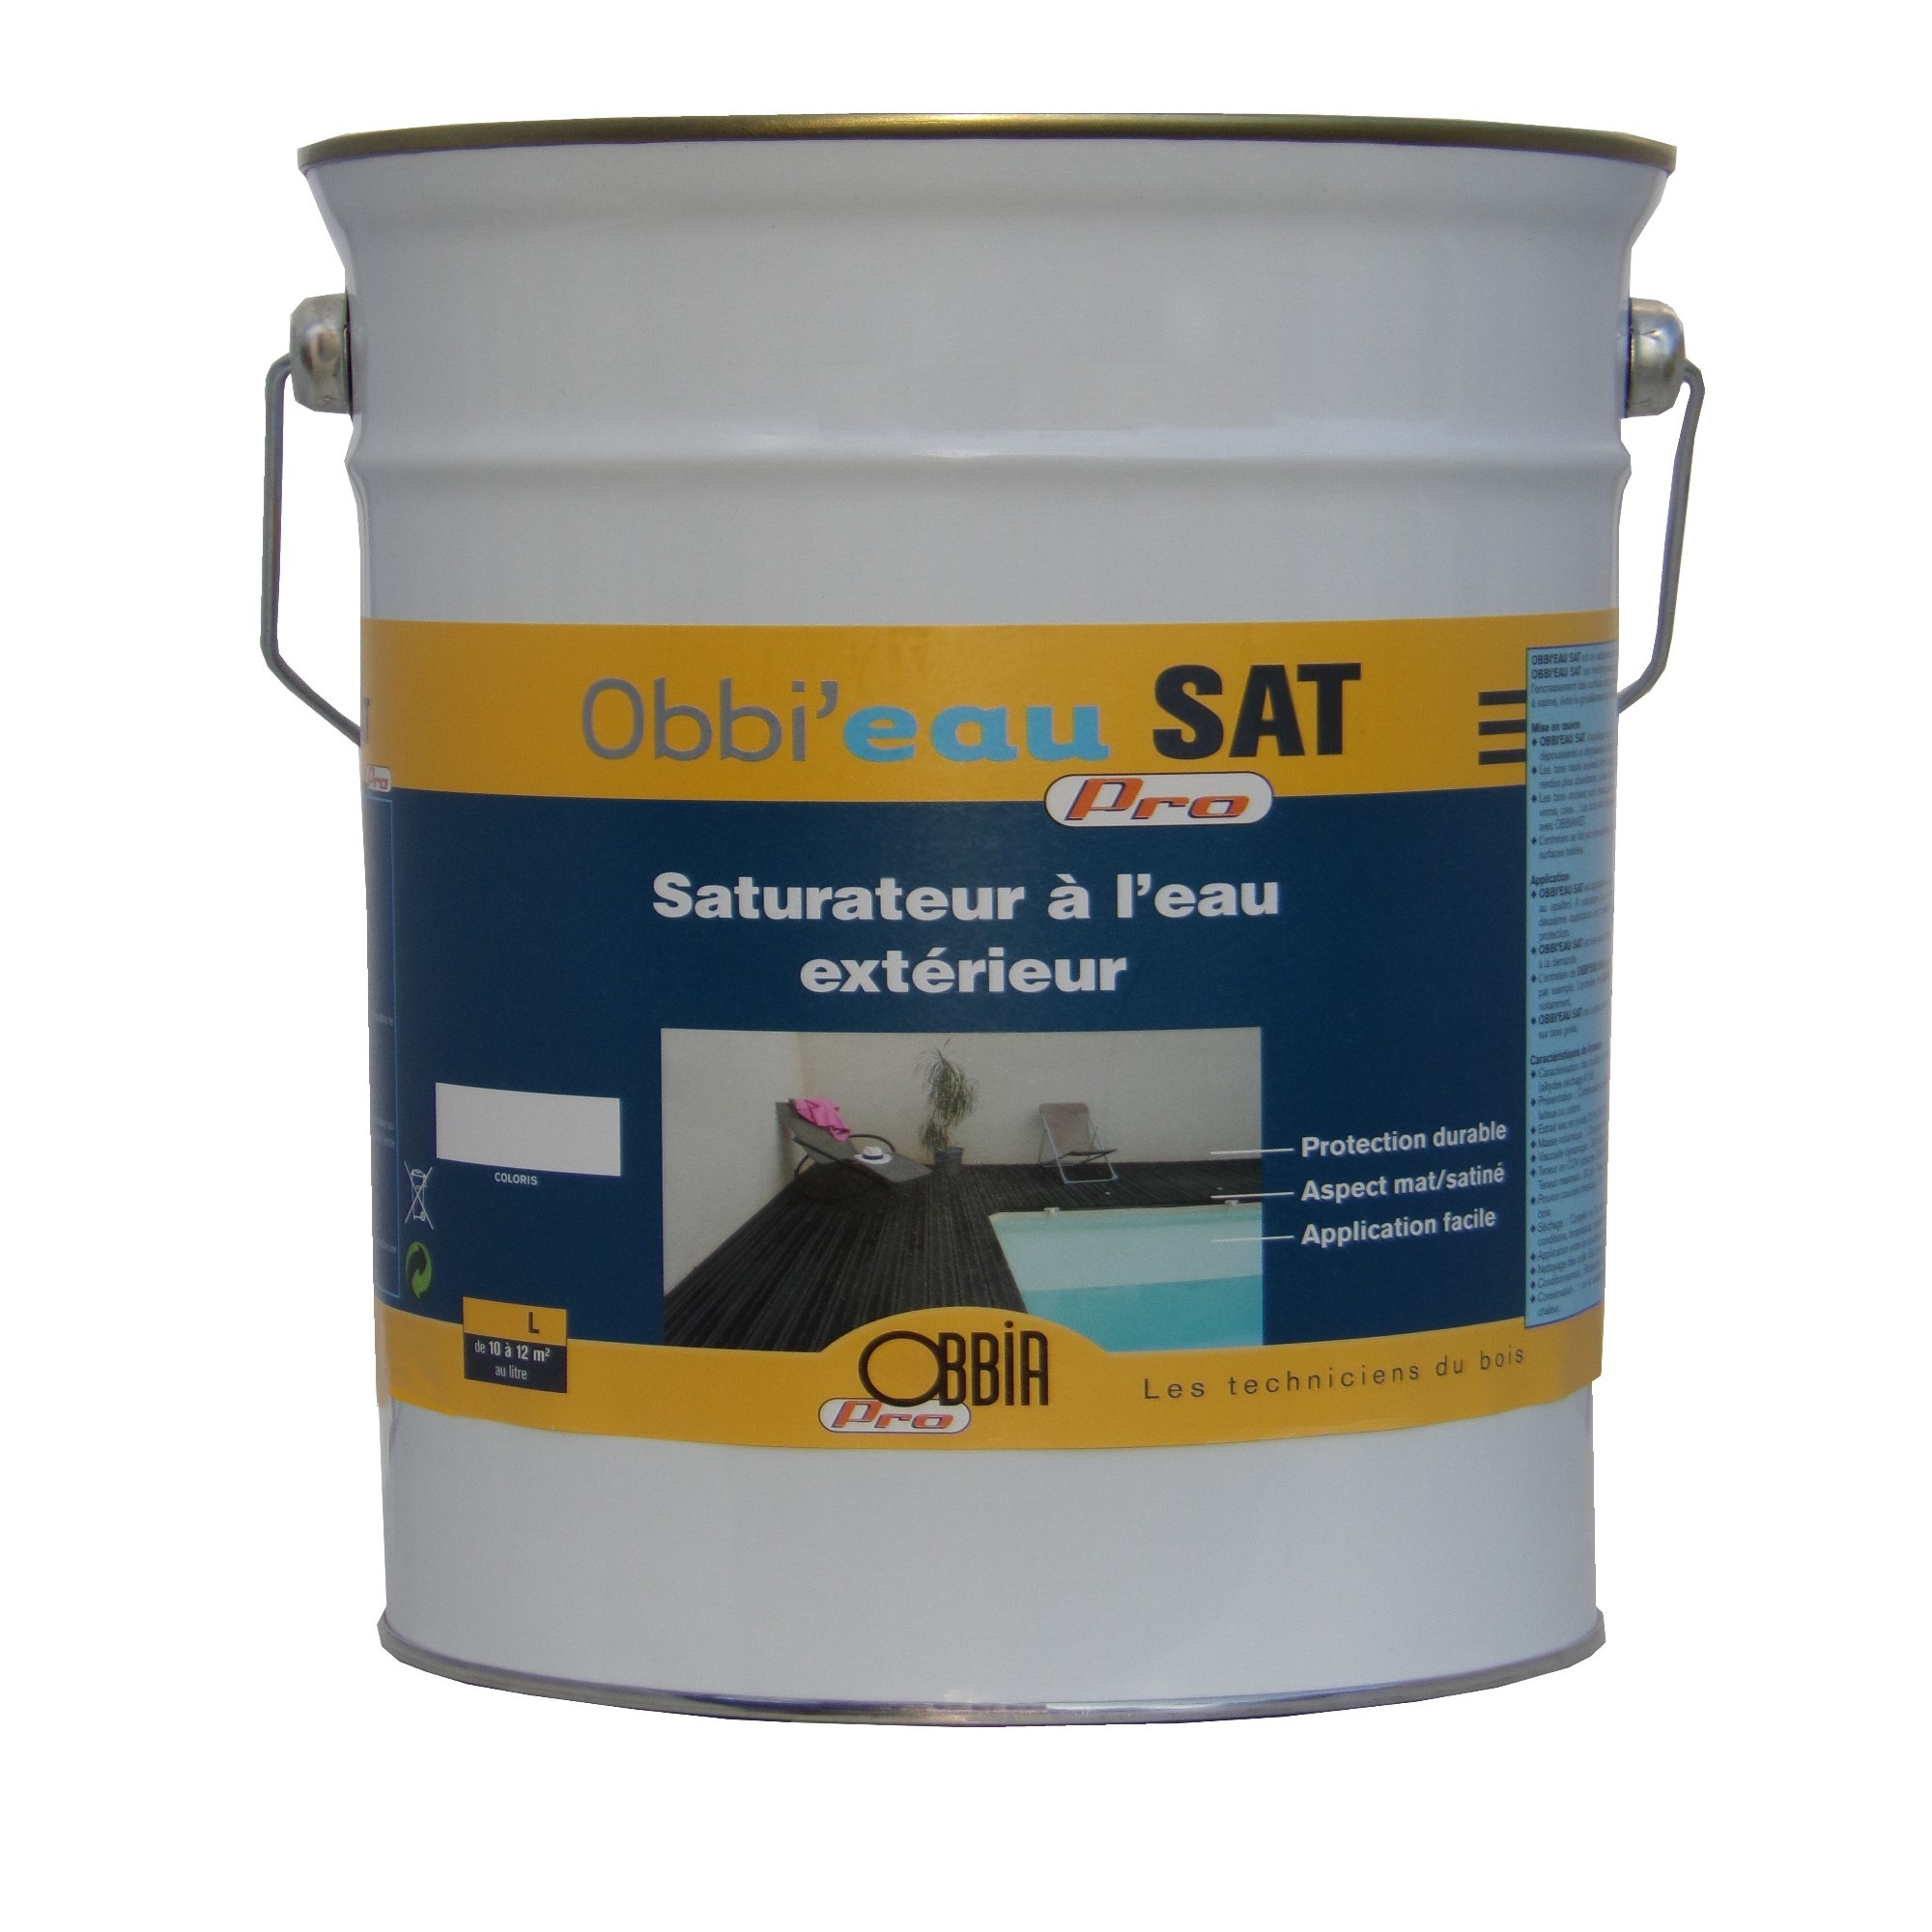 saturateur, obbieau sat